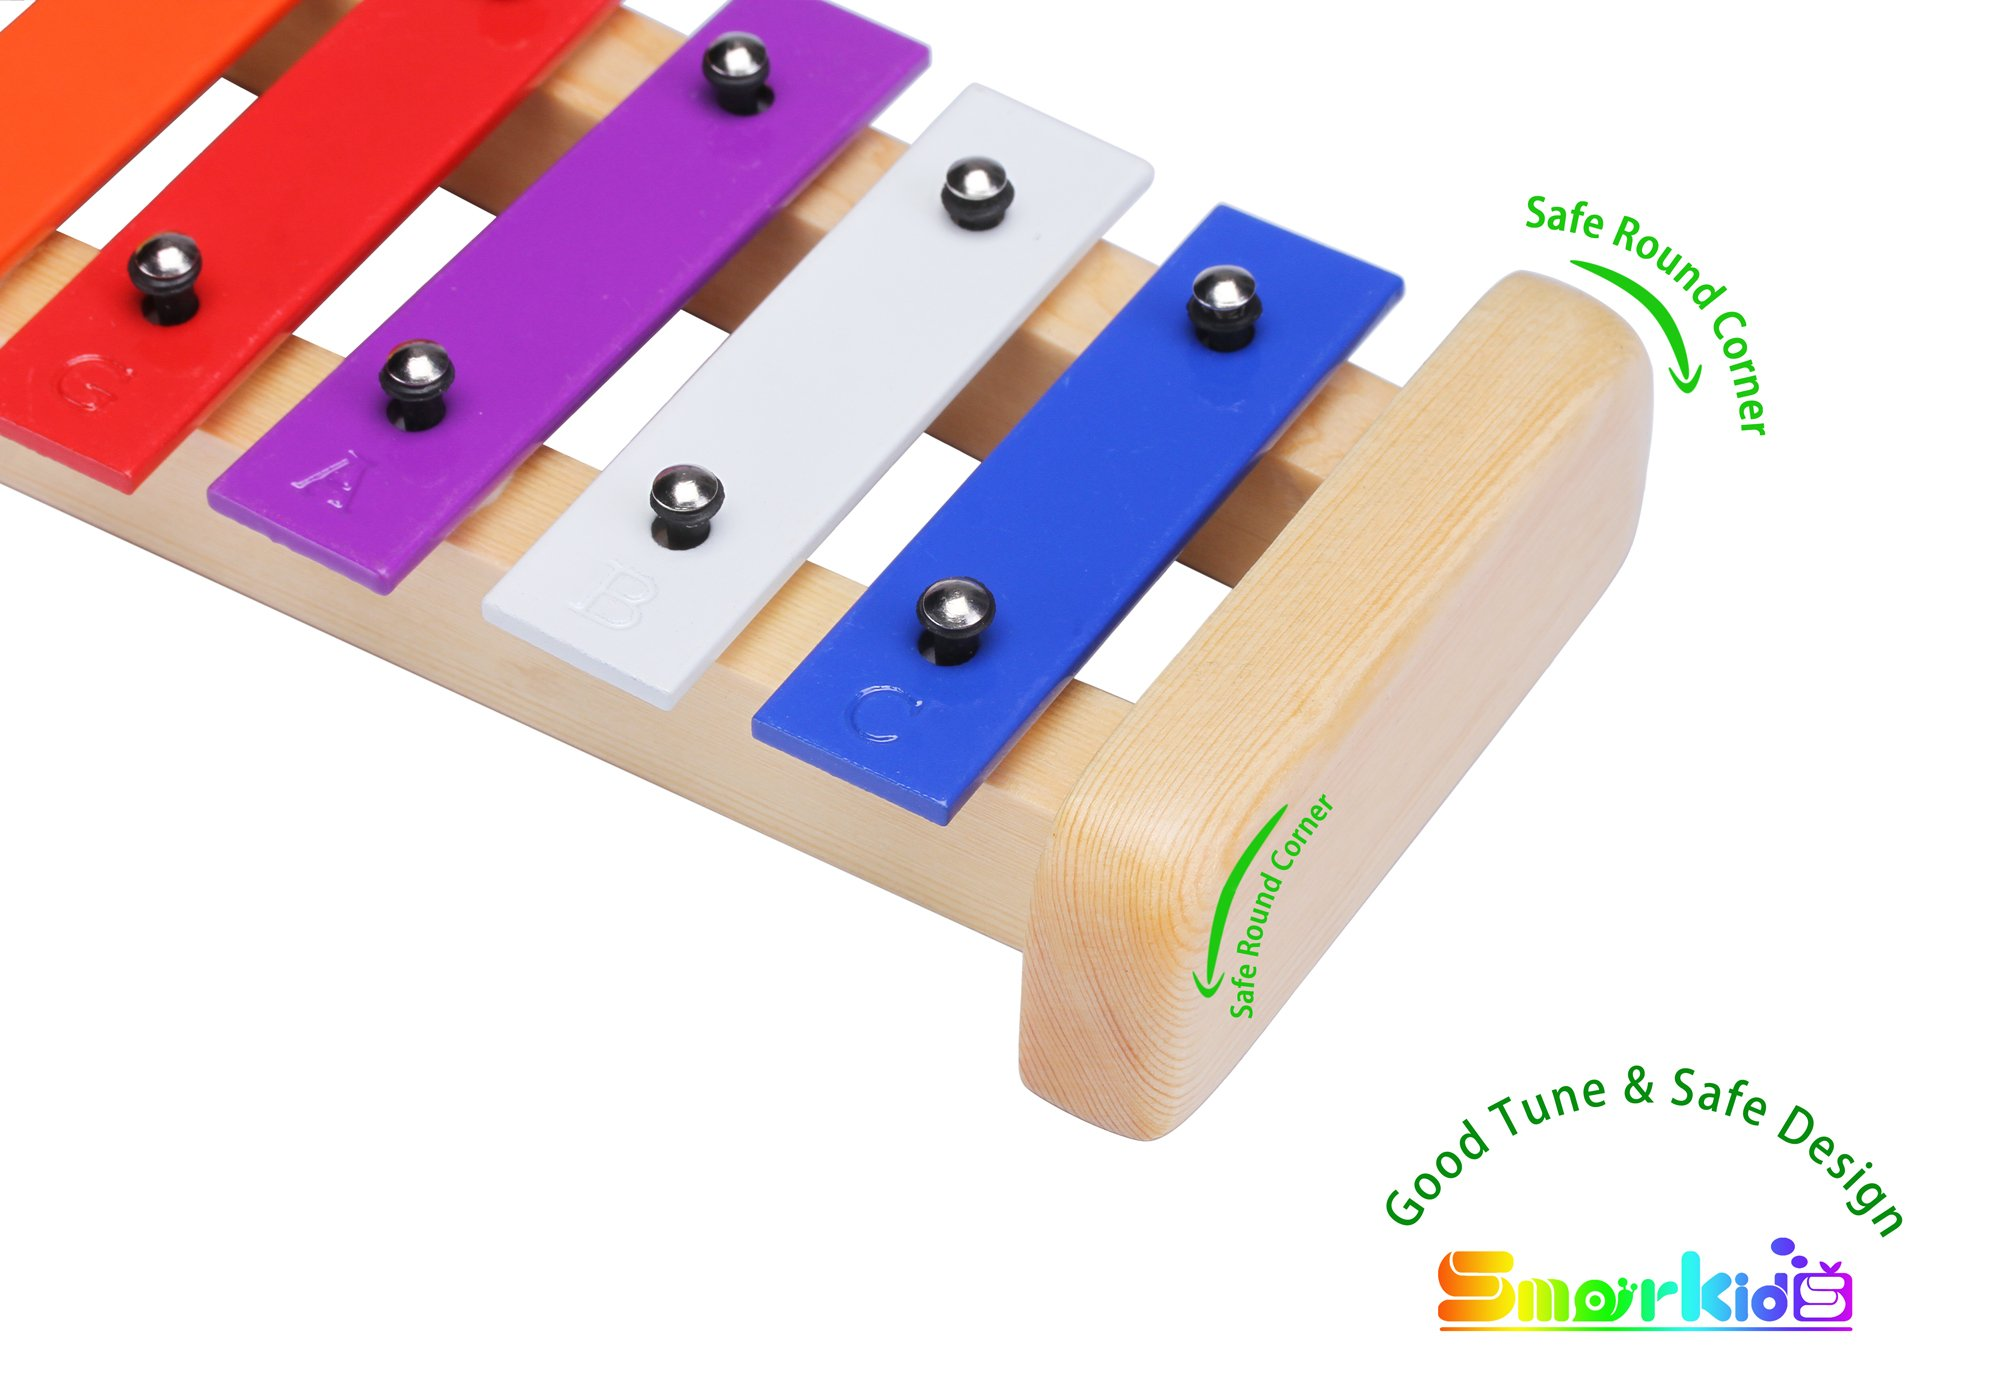 Smarkids Kids Xylophone Wooden Musical Toys Prime 8 Note Metal Keys Glockenspiel and Harmonica Instruments Set with Song Sheet for Toddler, Children, Boys and Girls with Xylophone Mallets by Smarkids (Image #5)